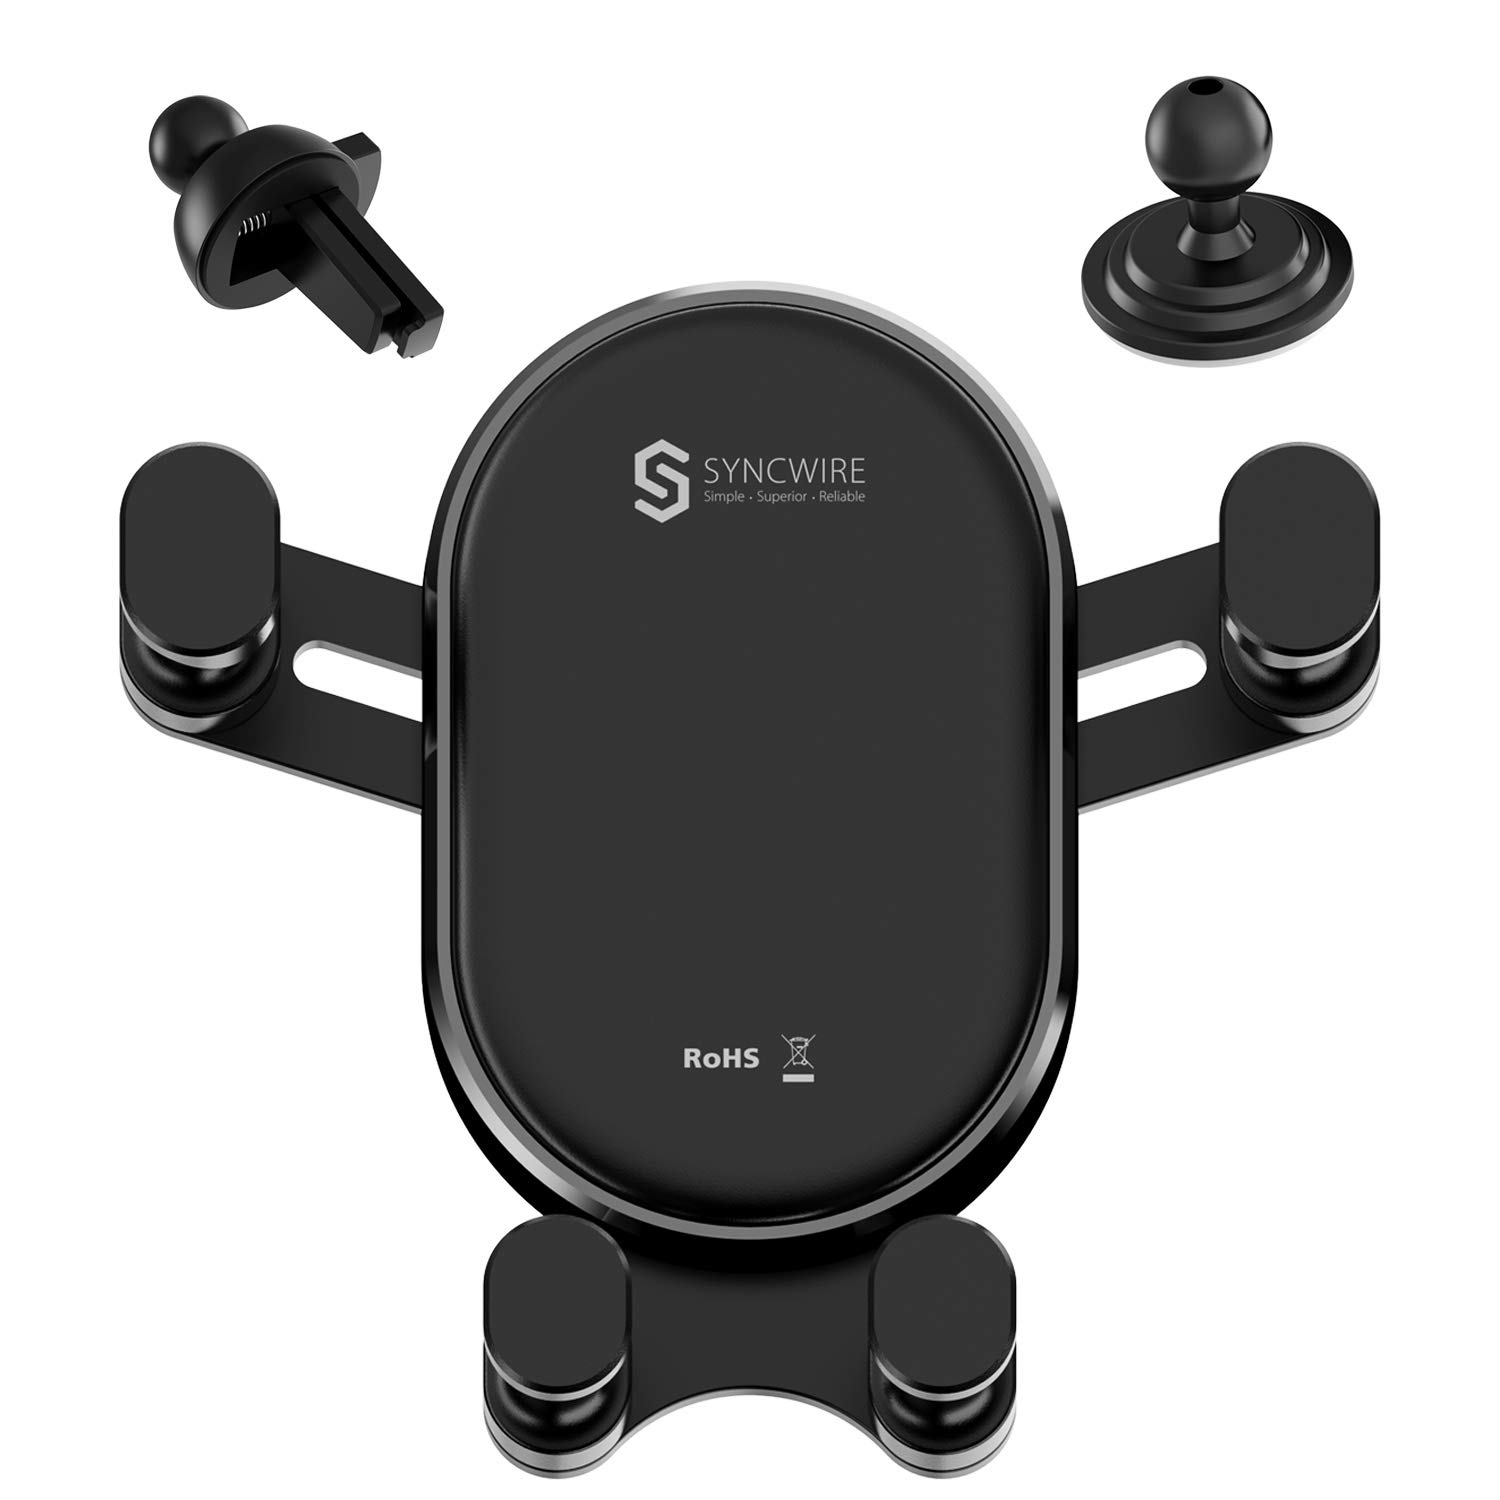 Samsung Galaxy S10 Plus//S10//S9//S8//S7 and More Automatic Locking Universal Cell Phone Holder Compatible iPhone Xs MAX//XS//XR//X//8//8 Plus Syncwire Air Vent Car Phone Mount